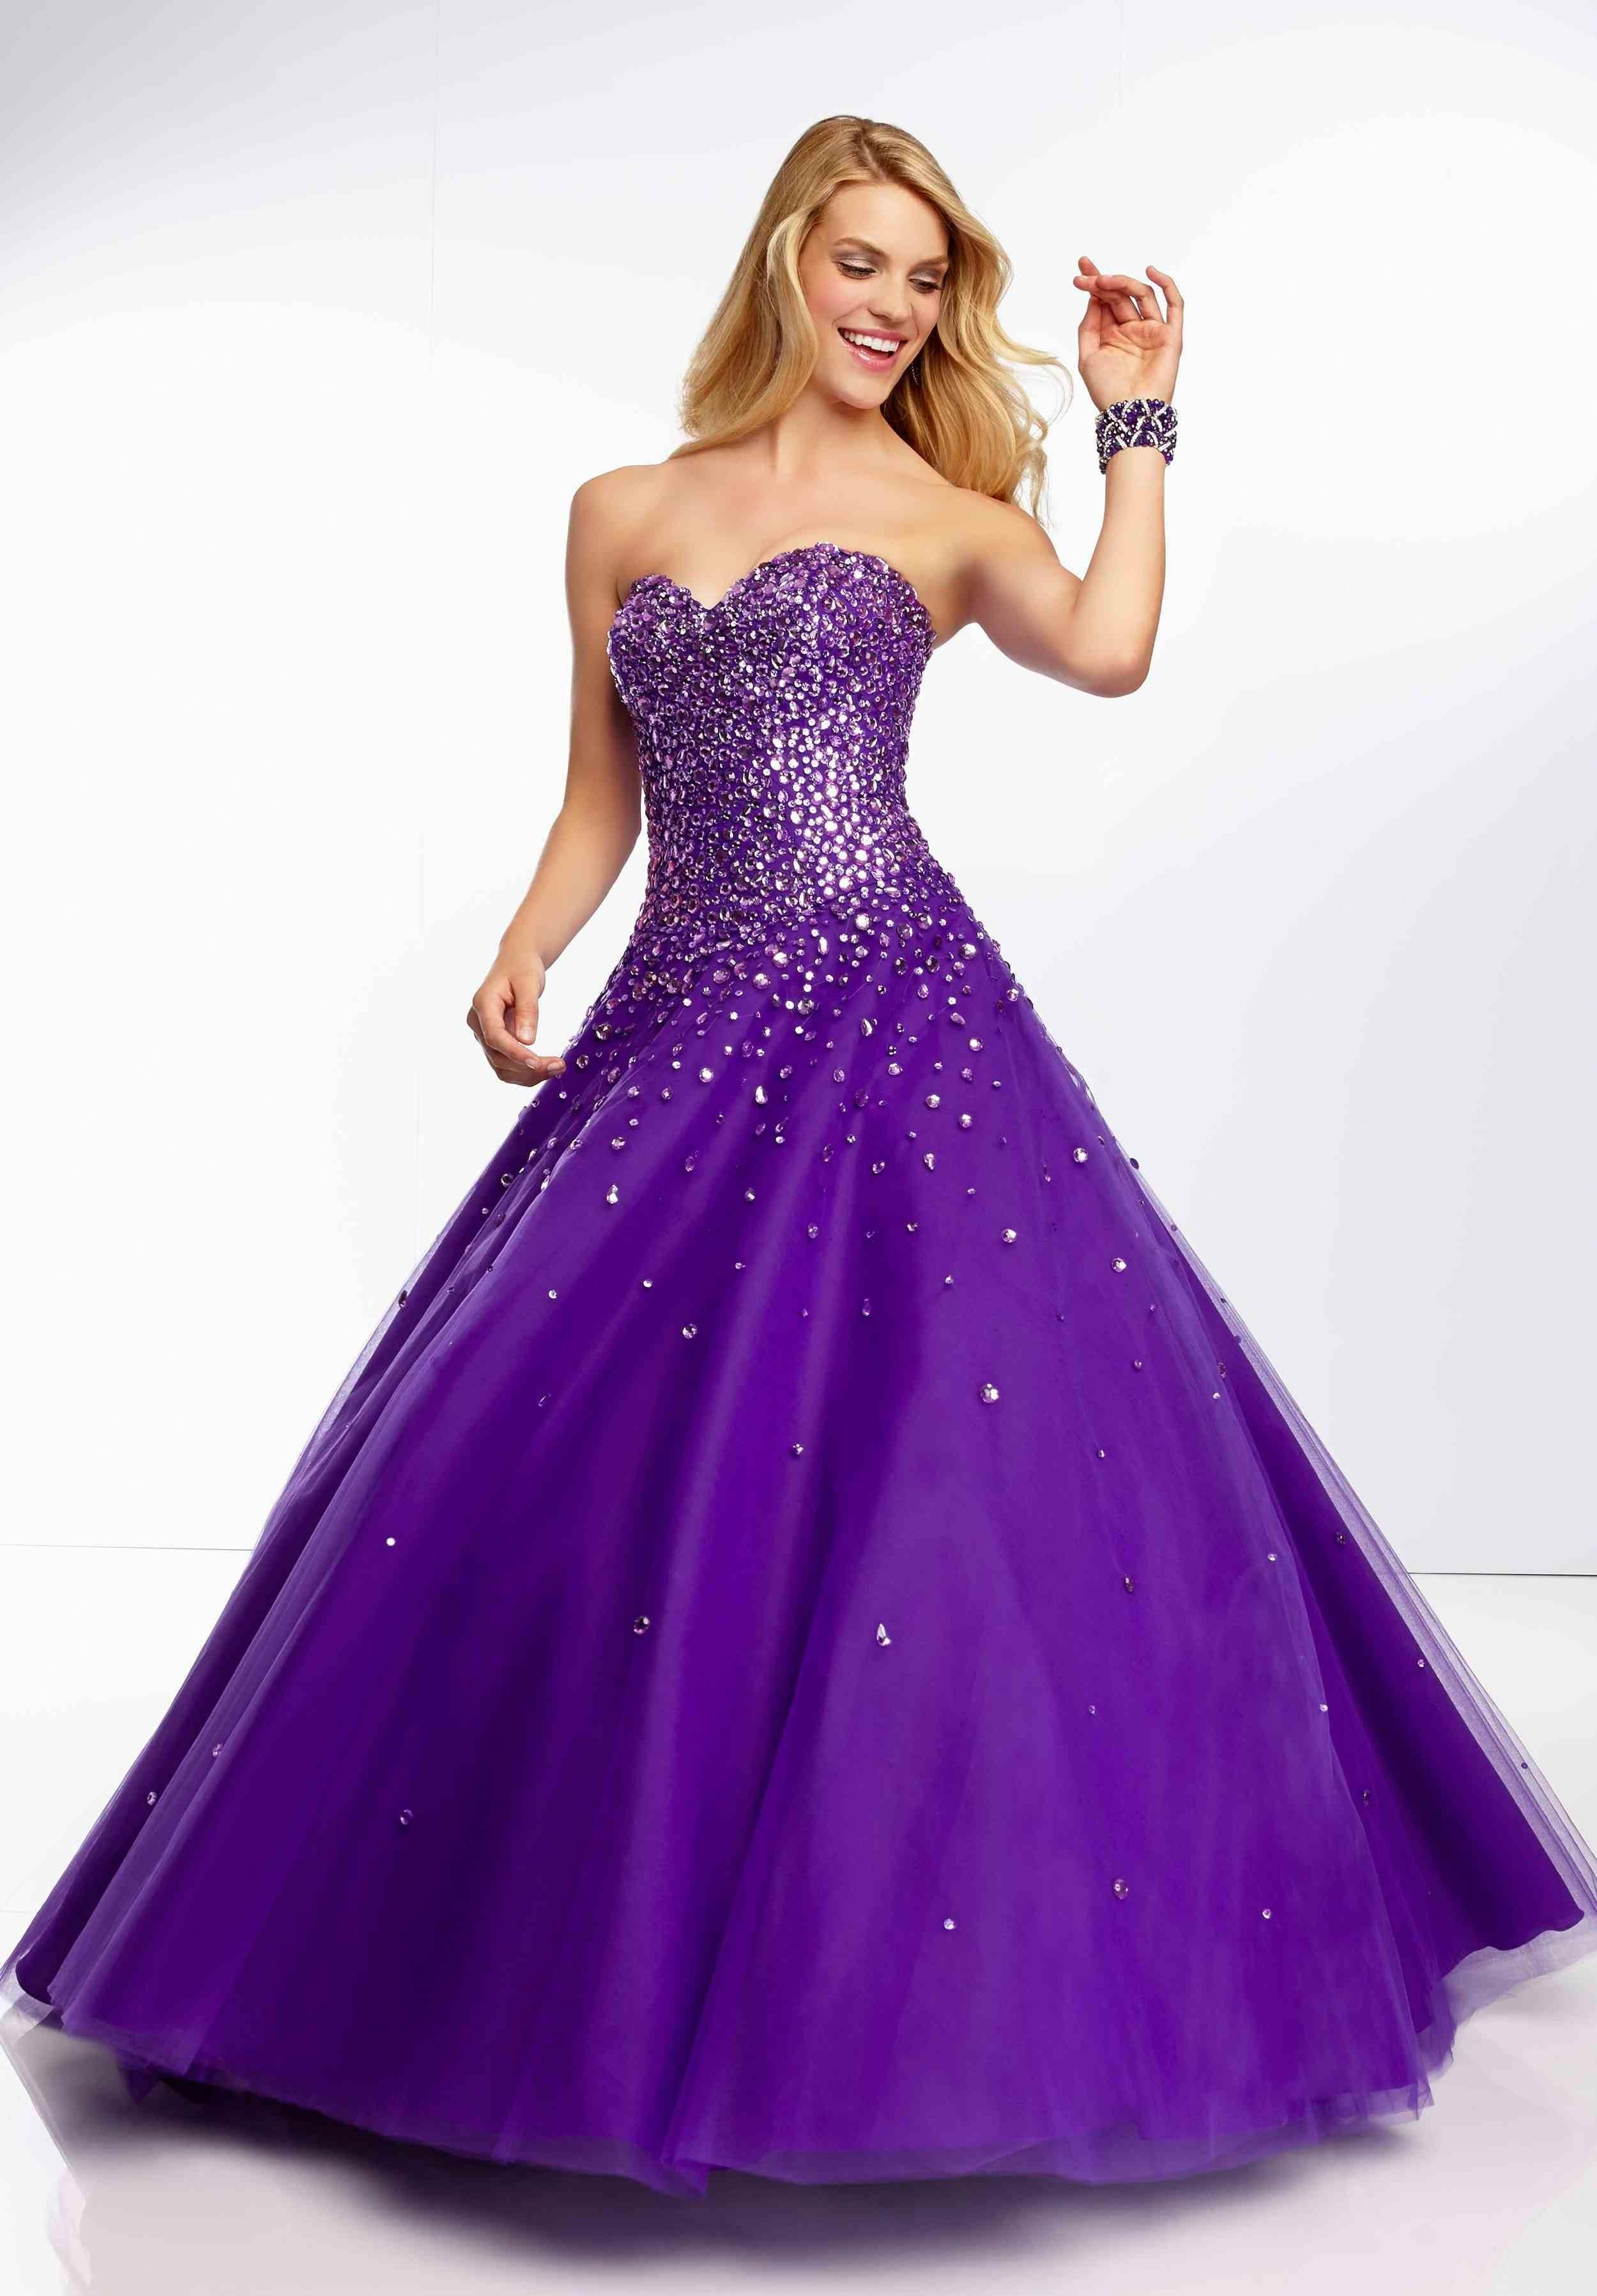 Purple and blue and green quinceanera dresses recommend dress for autumn in 2019